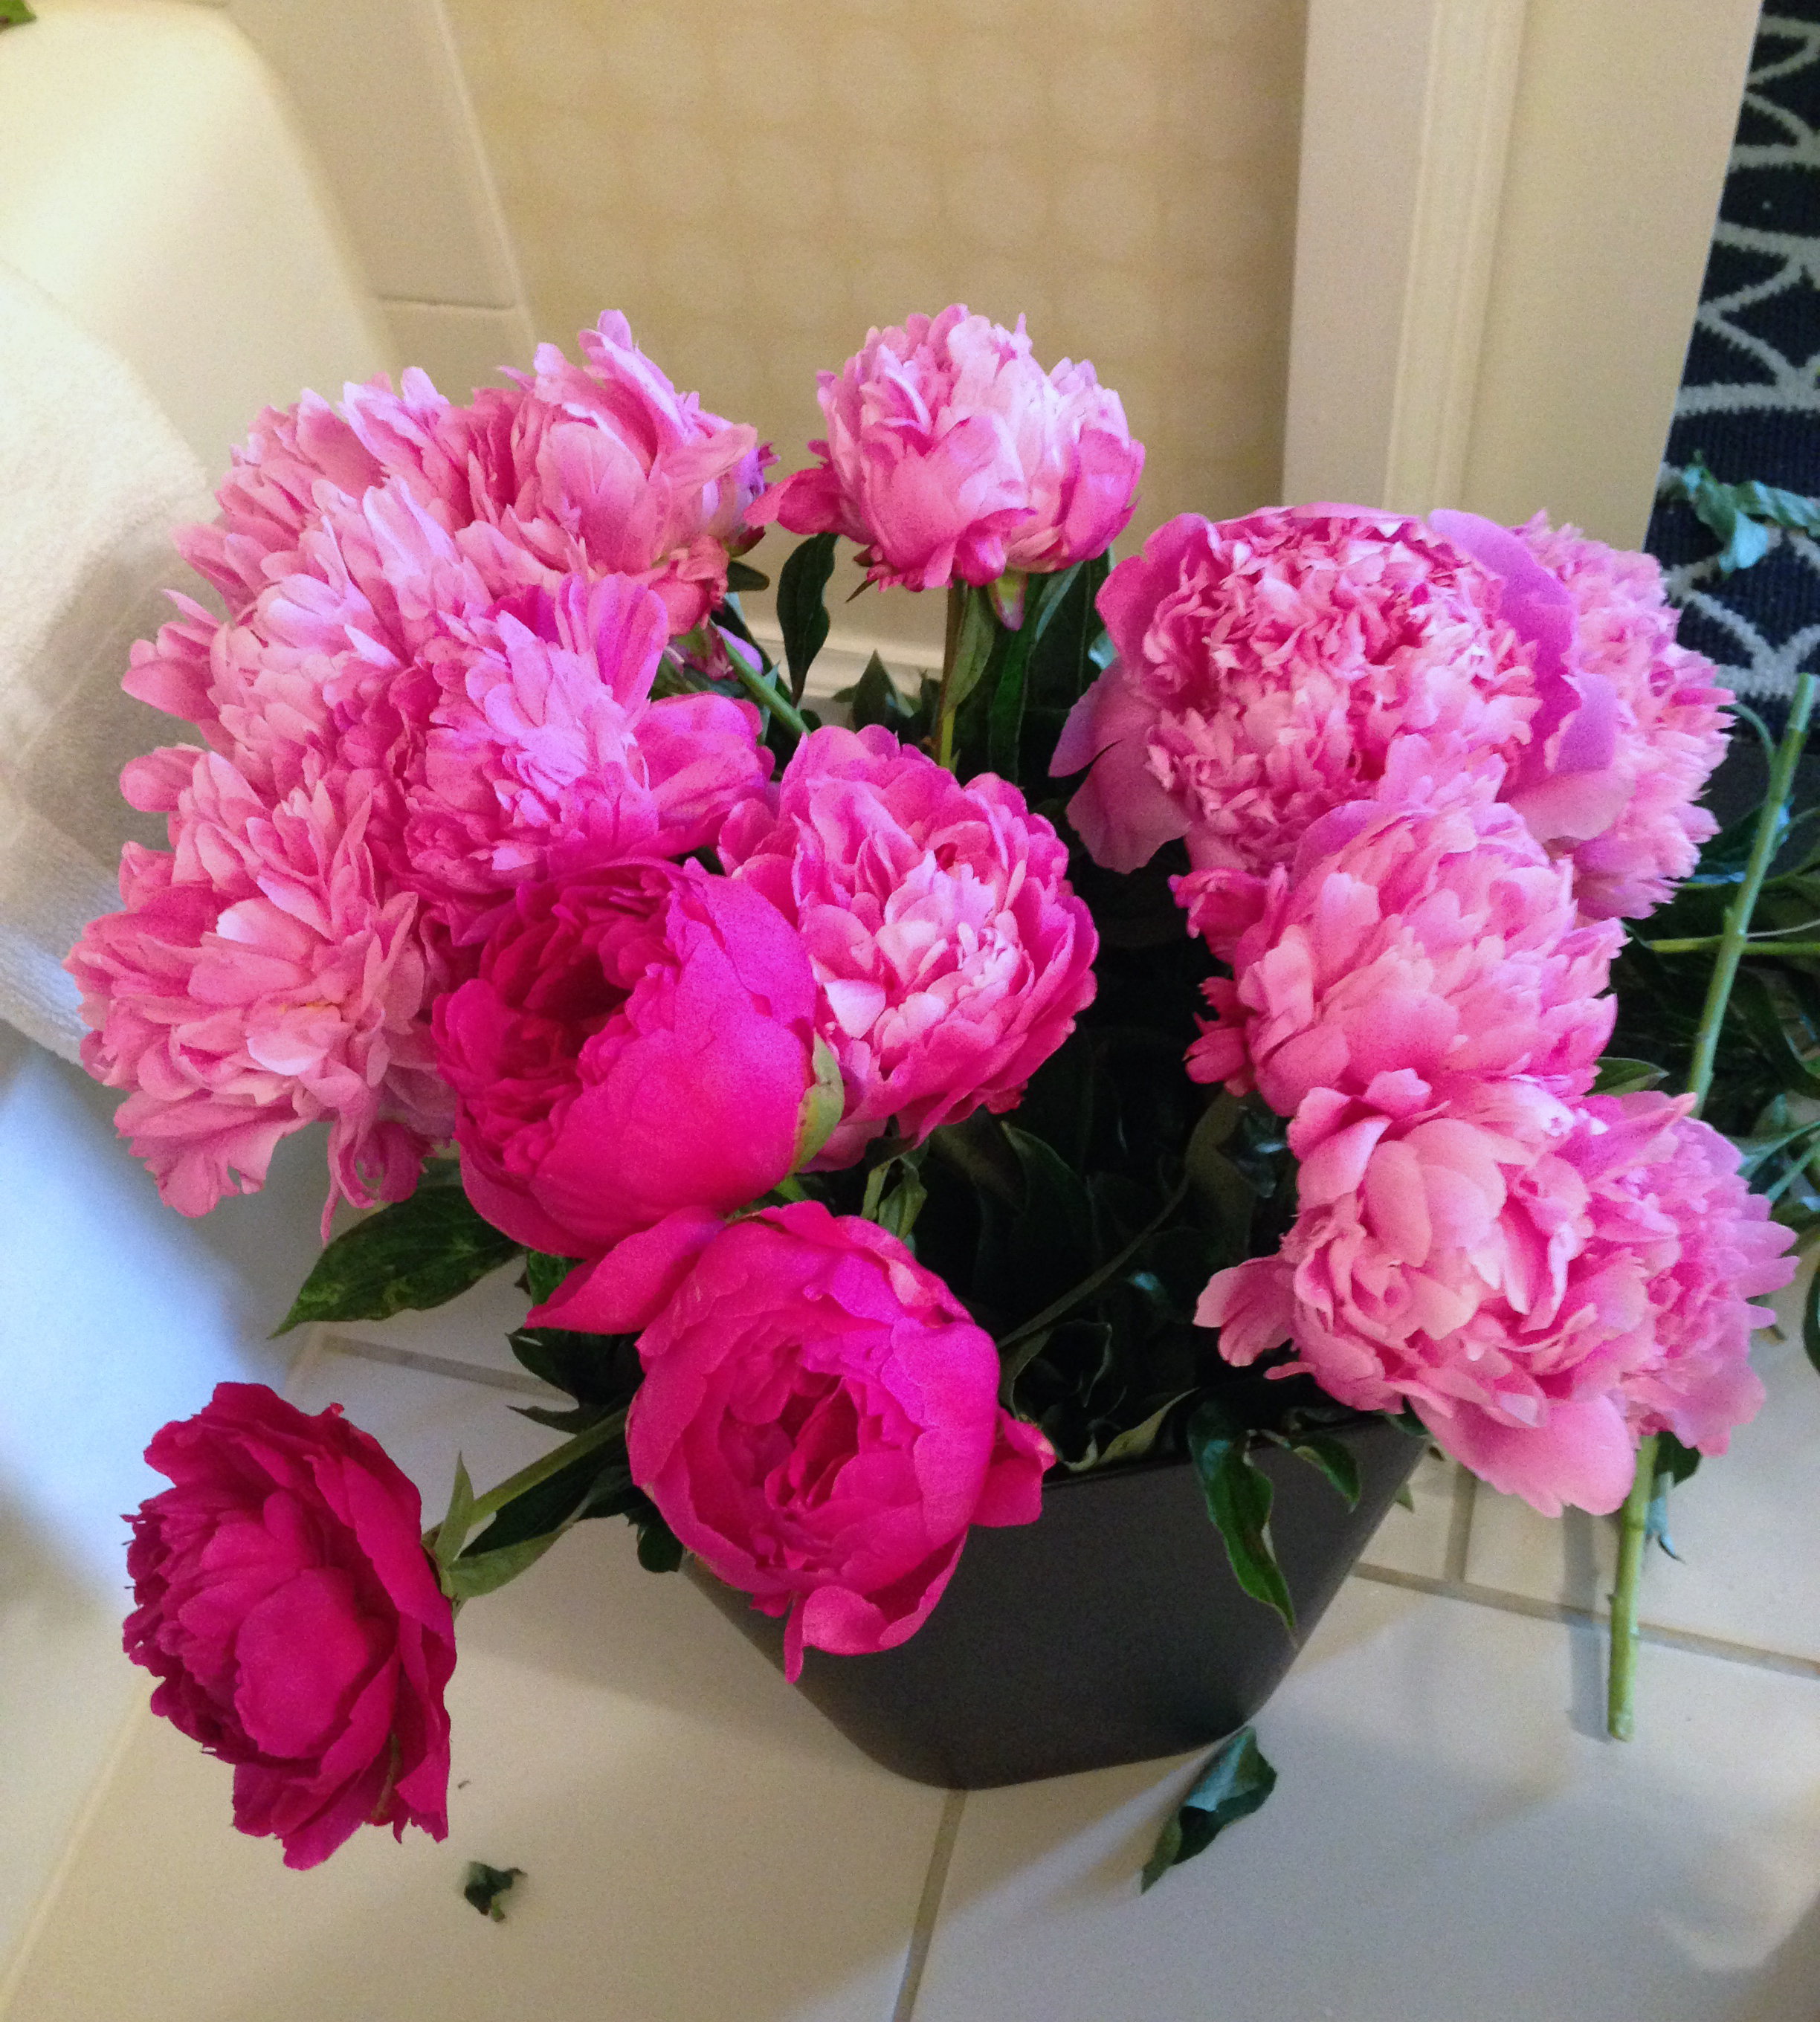 Flower arranging in hotel rooms part one peghardee insight twoand a lot this particular past spring and summer all for joyous family celebrations jump along and take a gander this was brentons 30th birthday izmirmasajfo